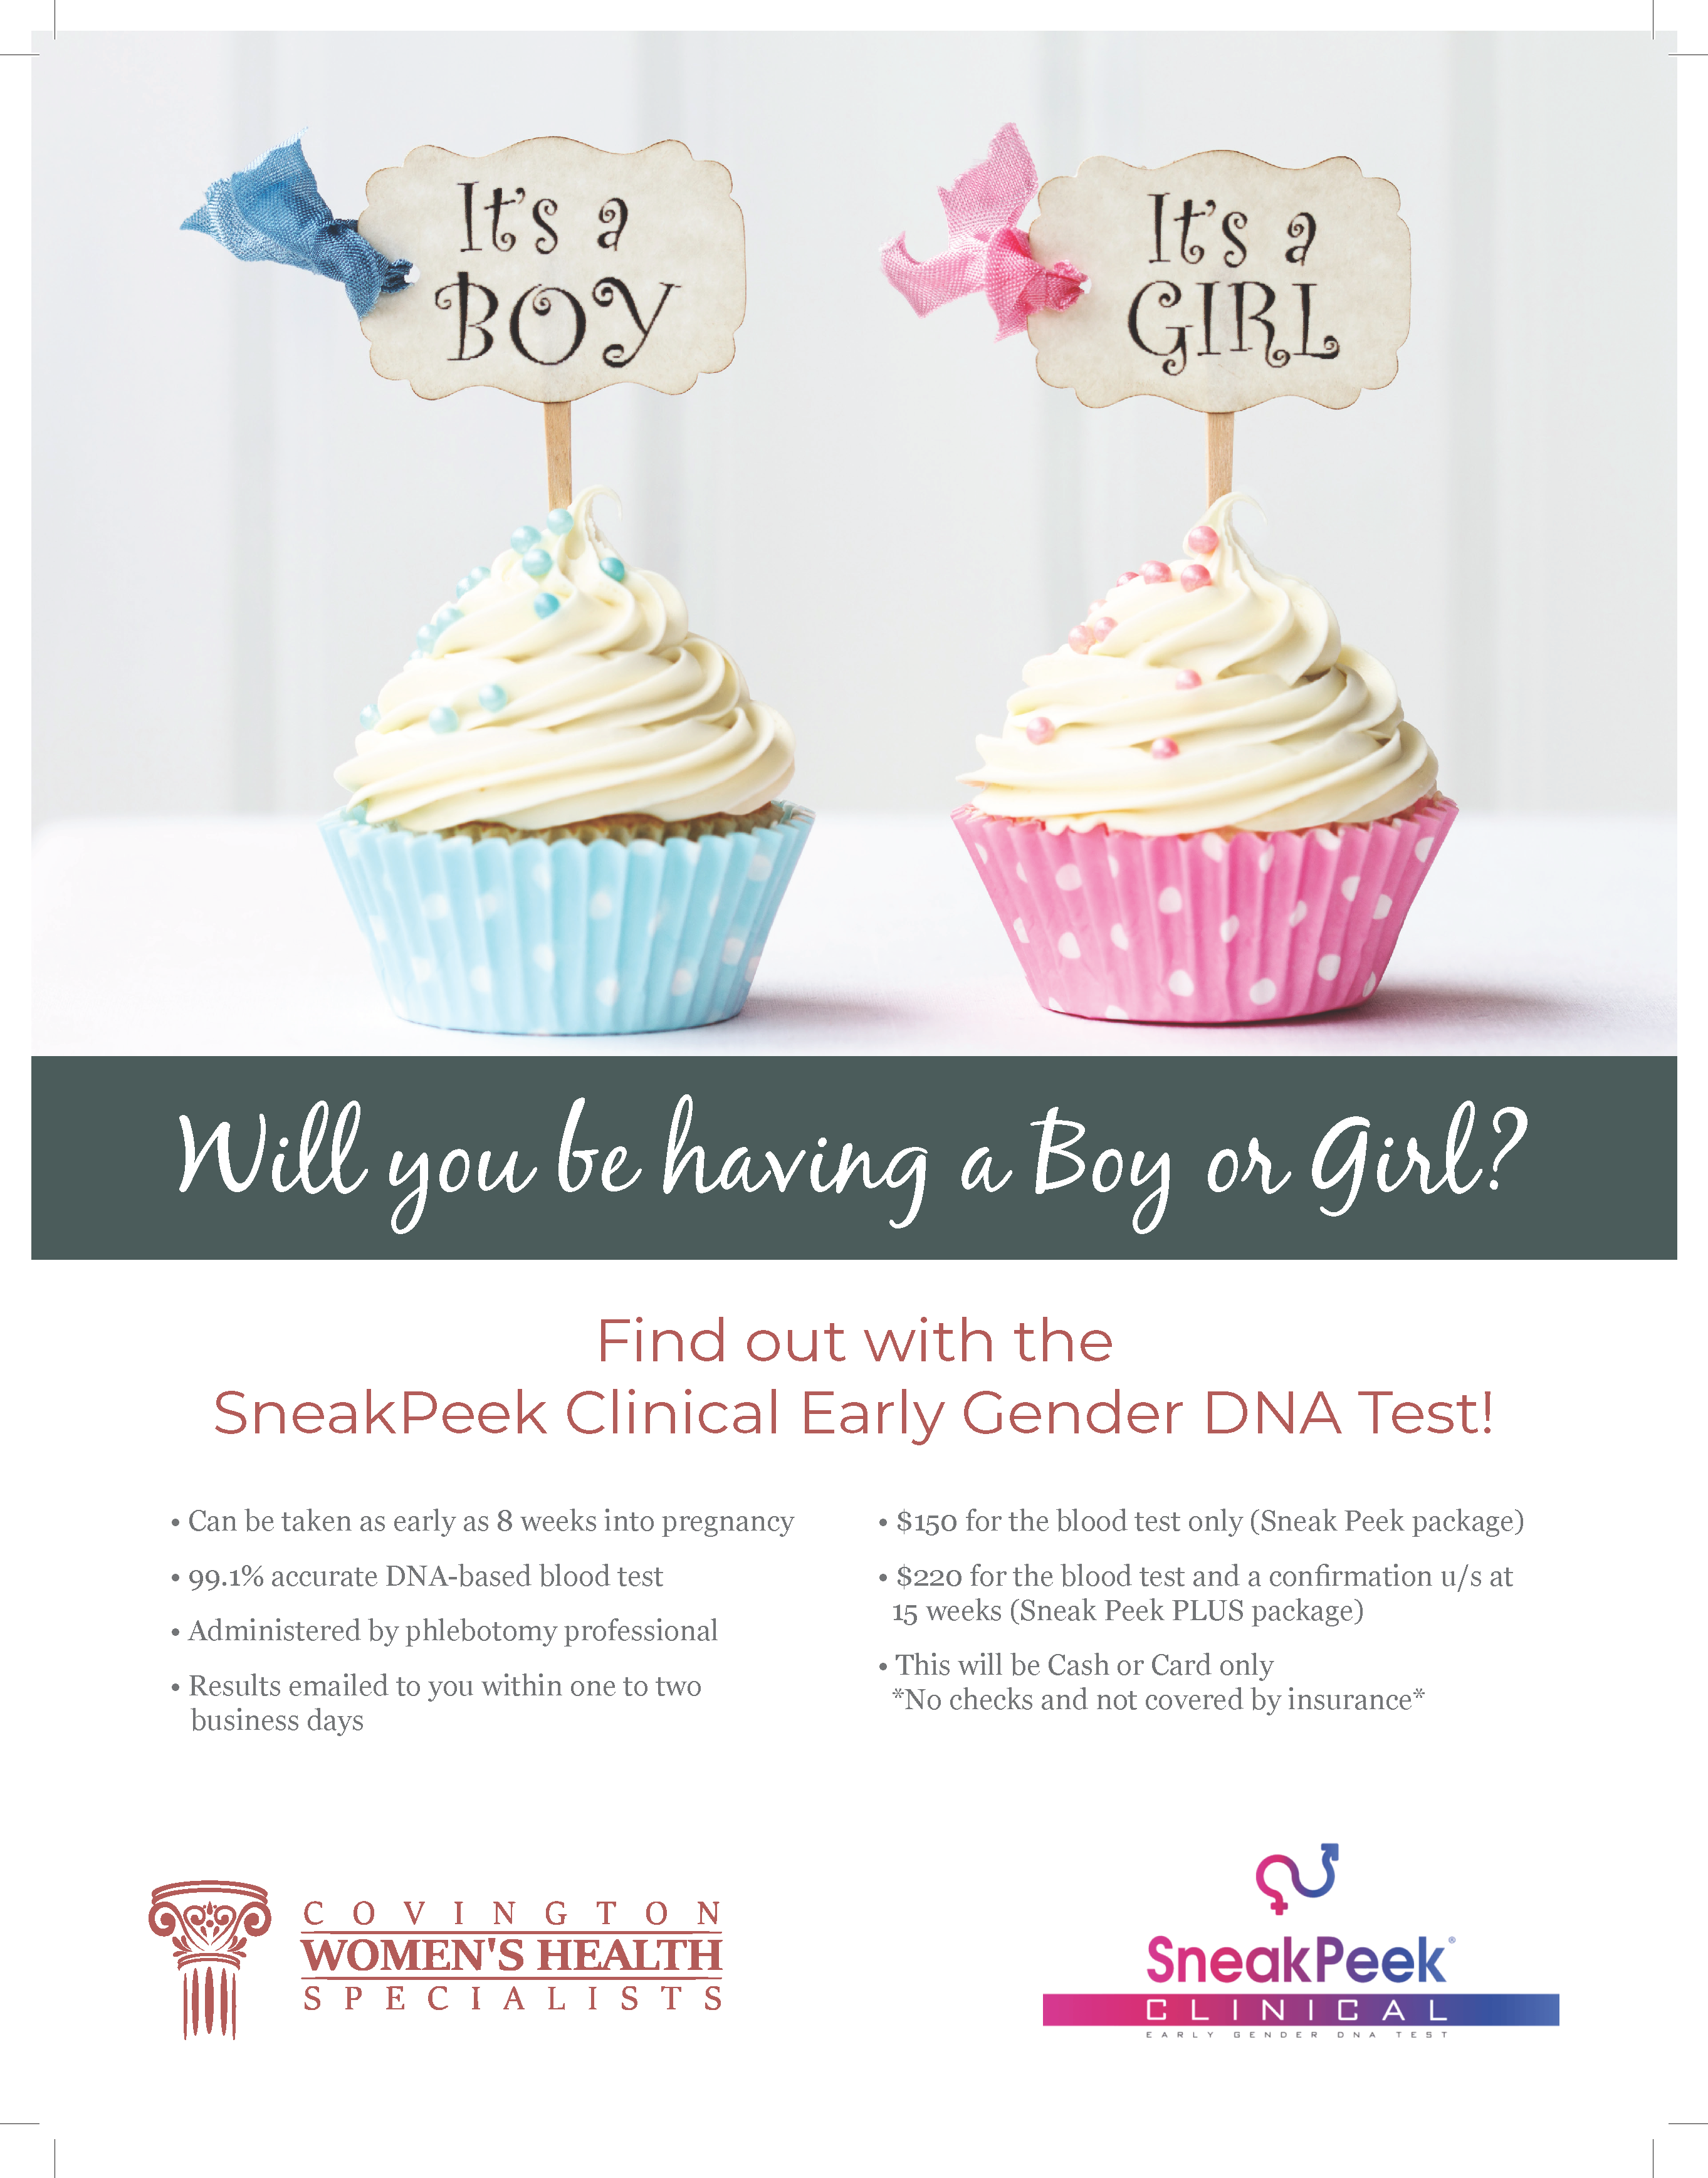 Flyer three of Covington Women's Health gender reveal service.